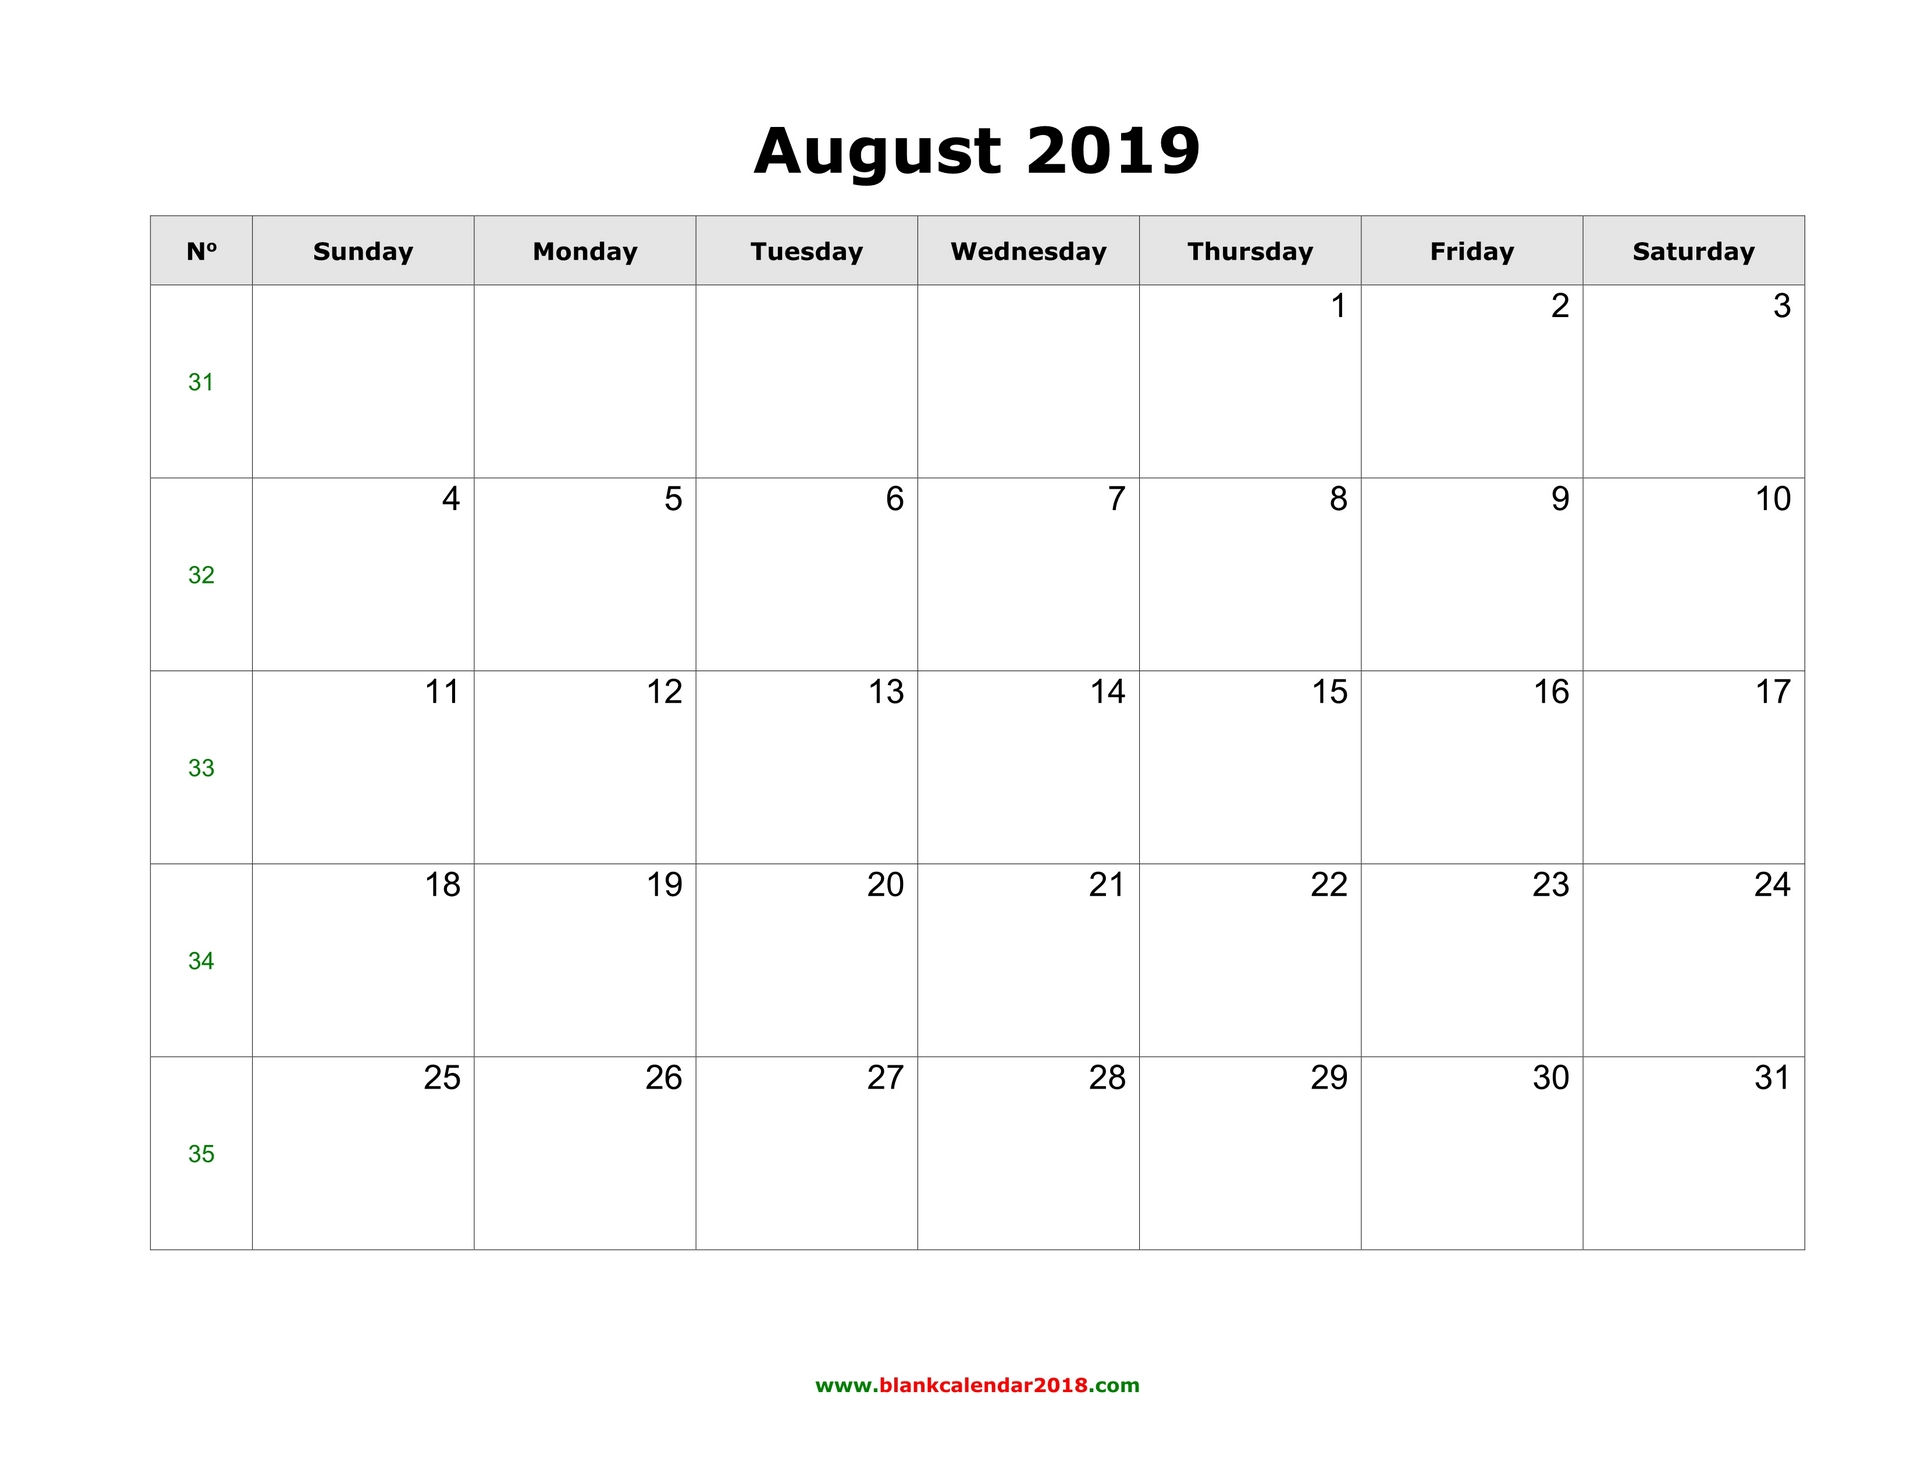 Blank Calendar For August 2019 for Blank Calendar Of August Full Page